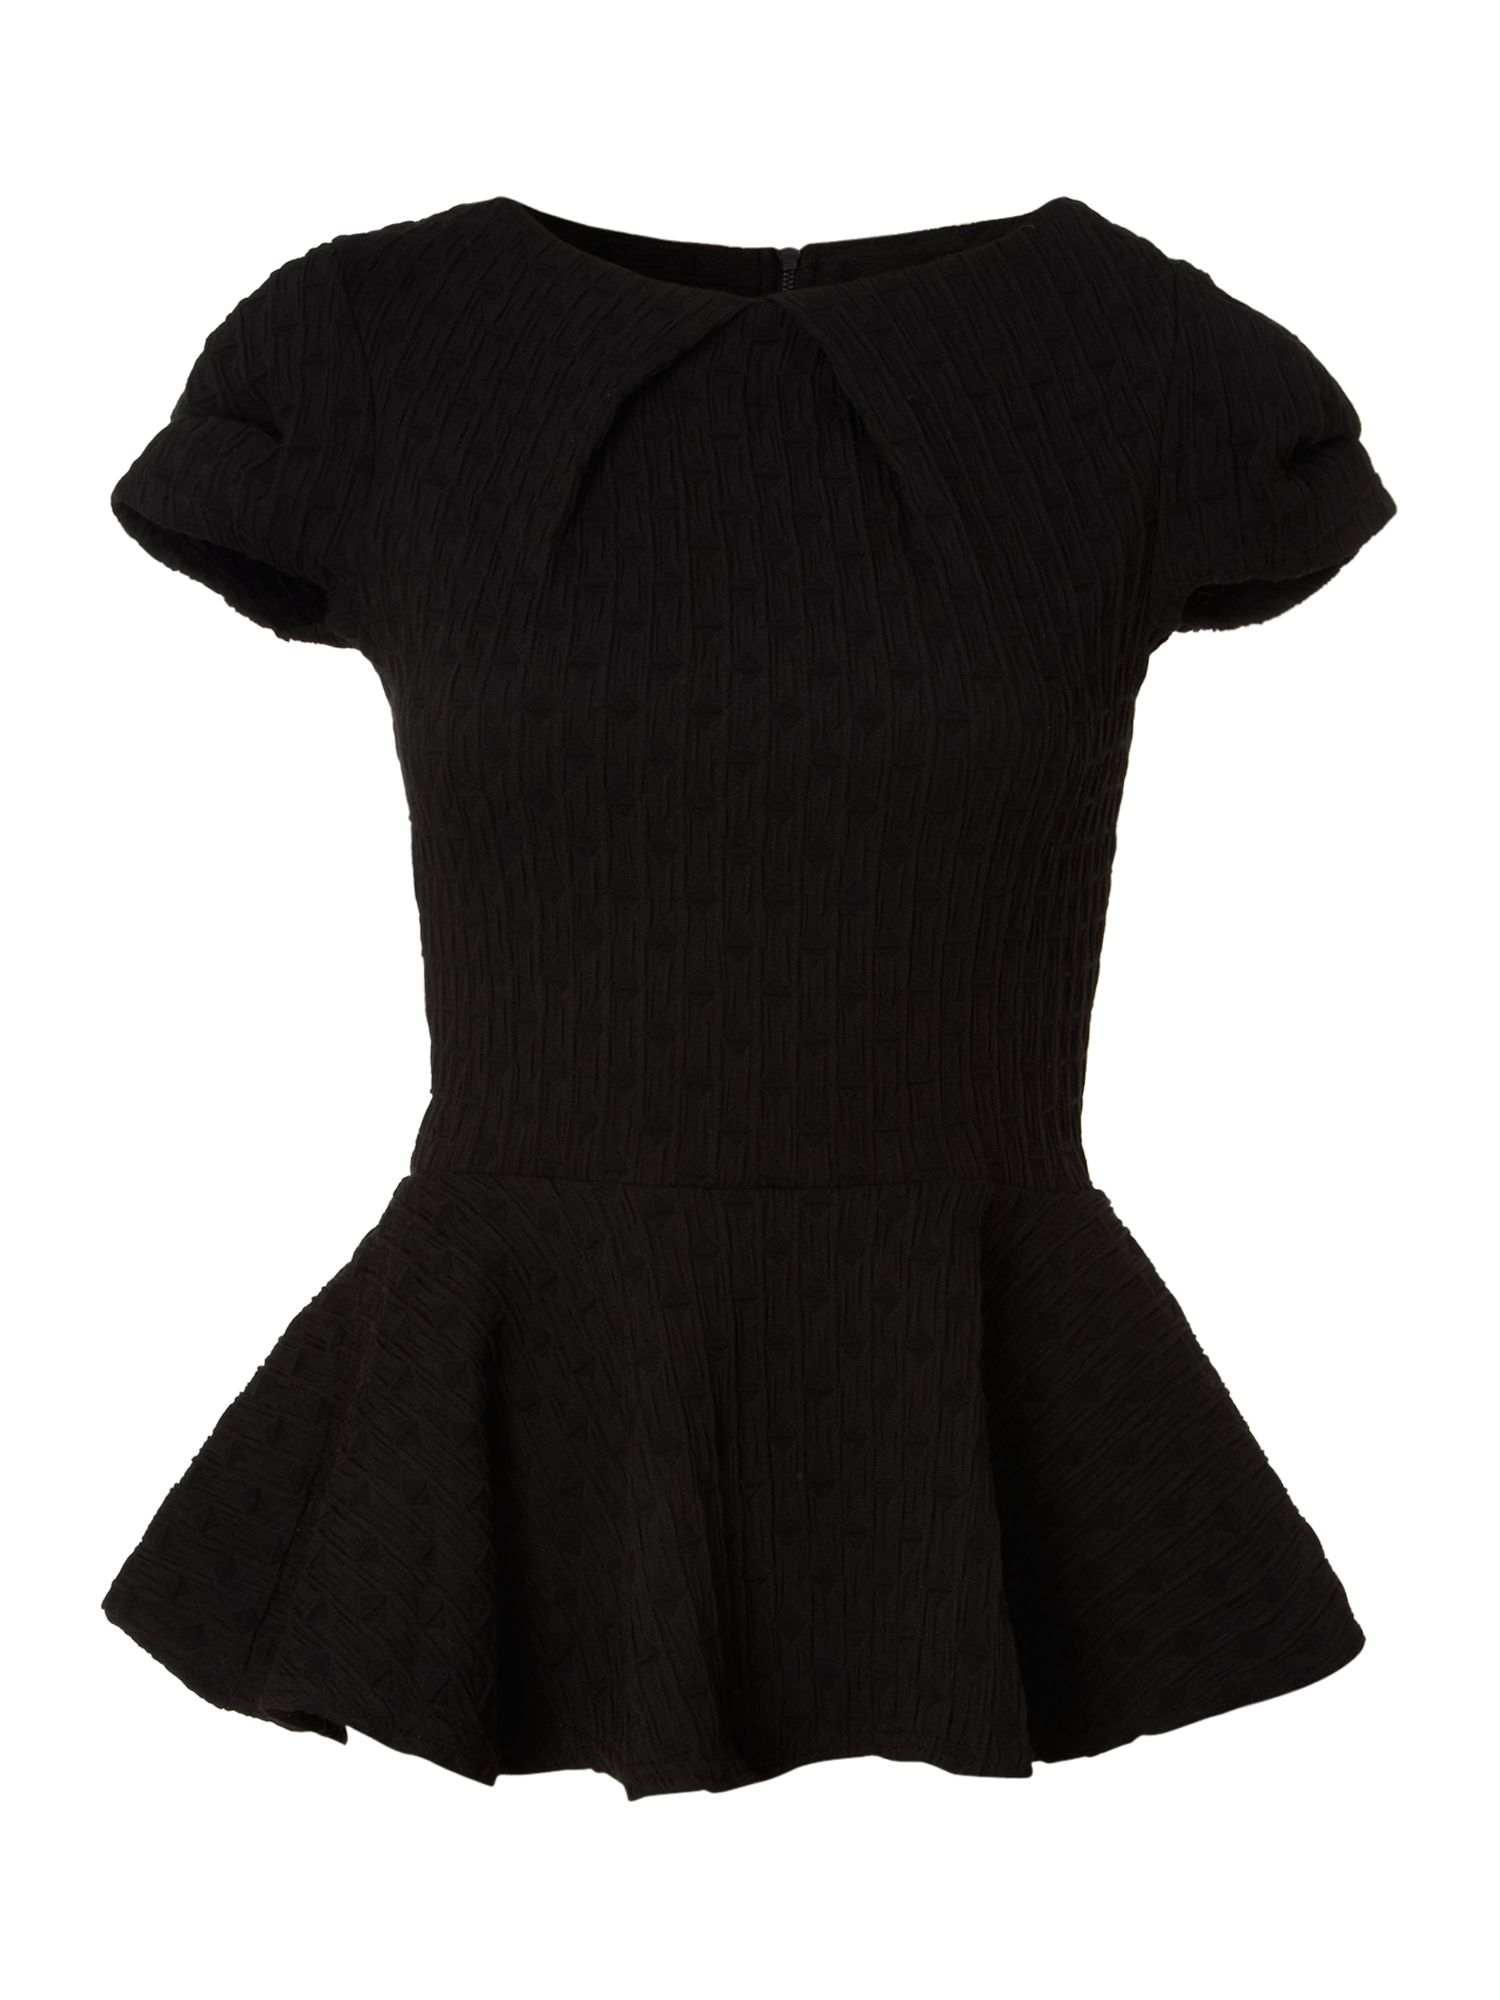 Pleat neck peplum top